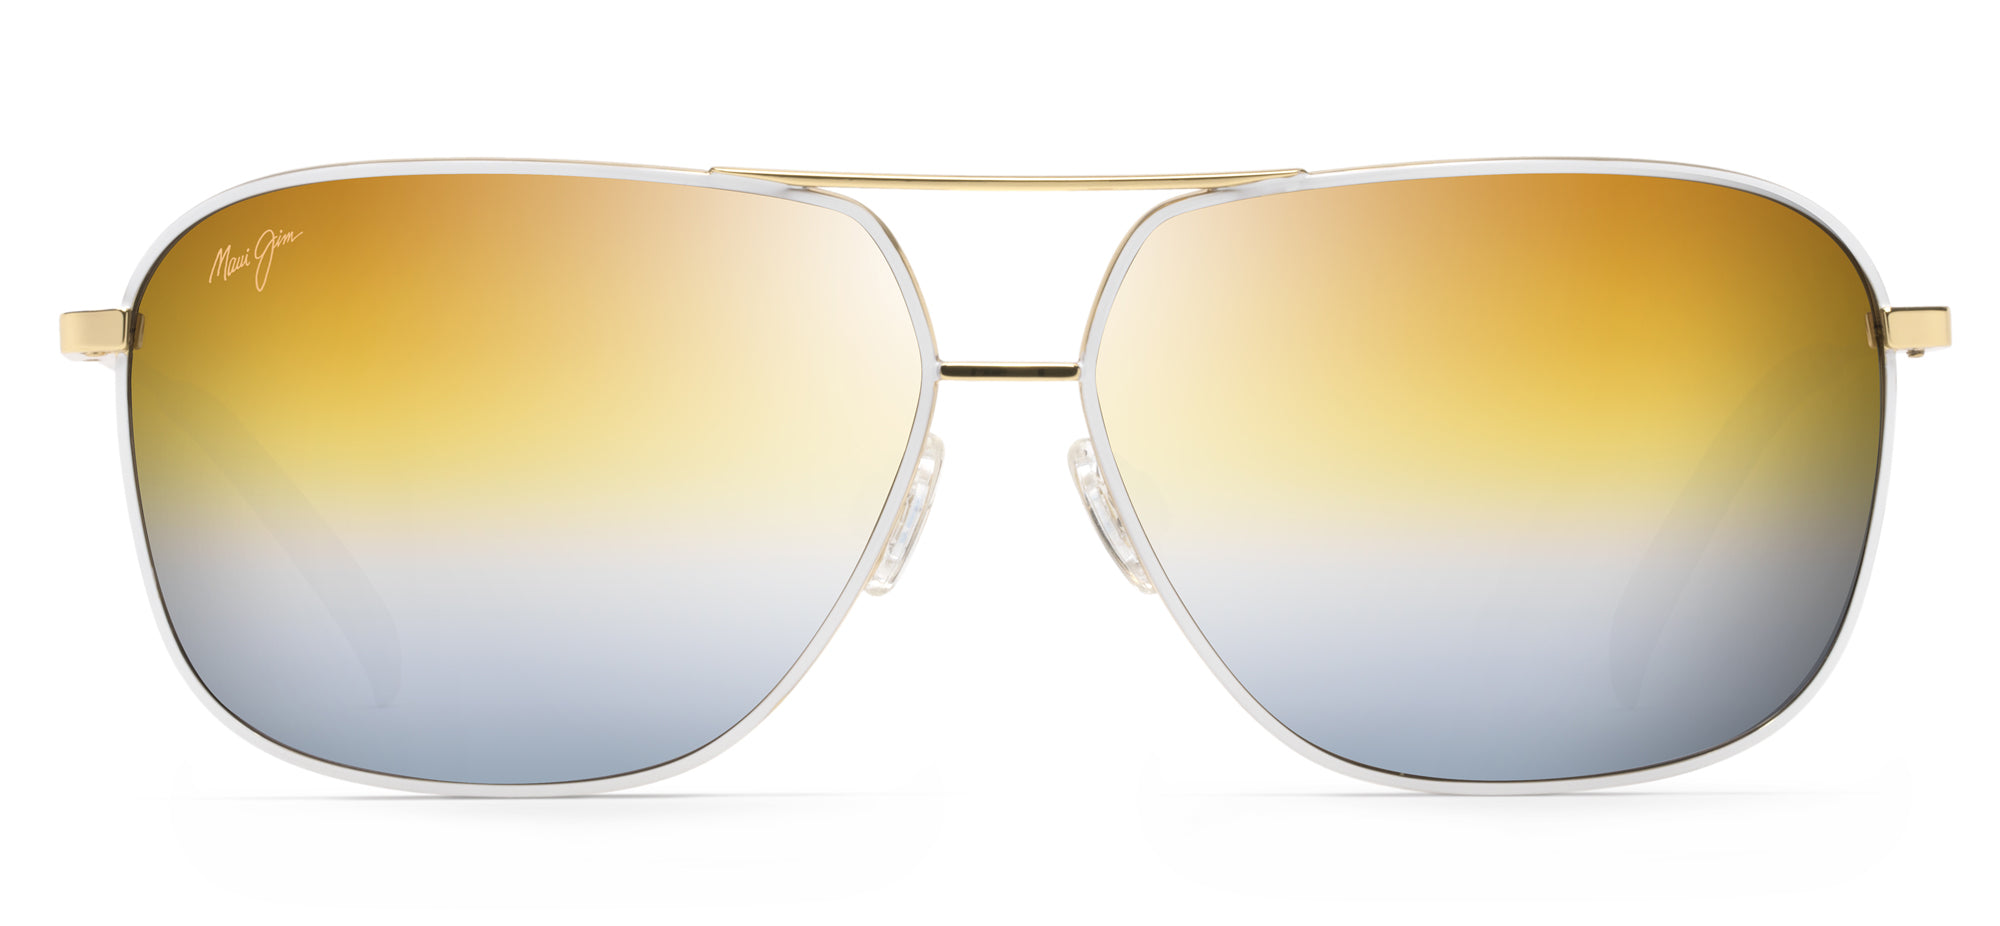 4b7748ed5197 Maui Jim Kami 778 Aviator Sunglasses- Gold with White, Dual Mirror Gold to  Silver Lenses